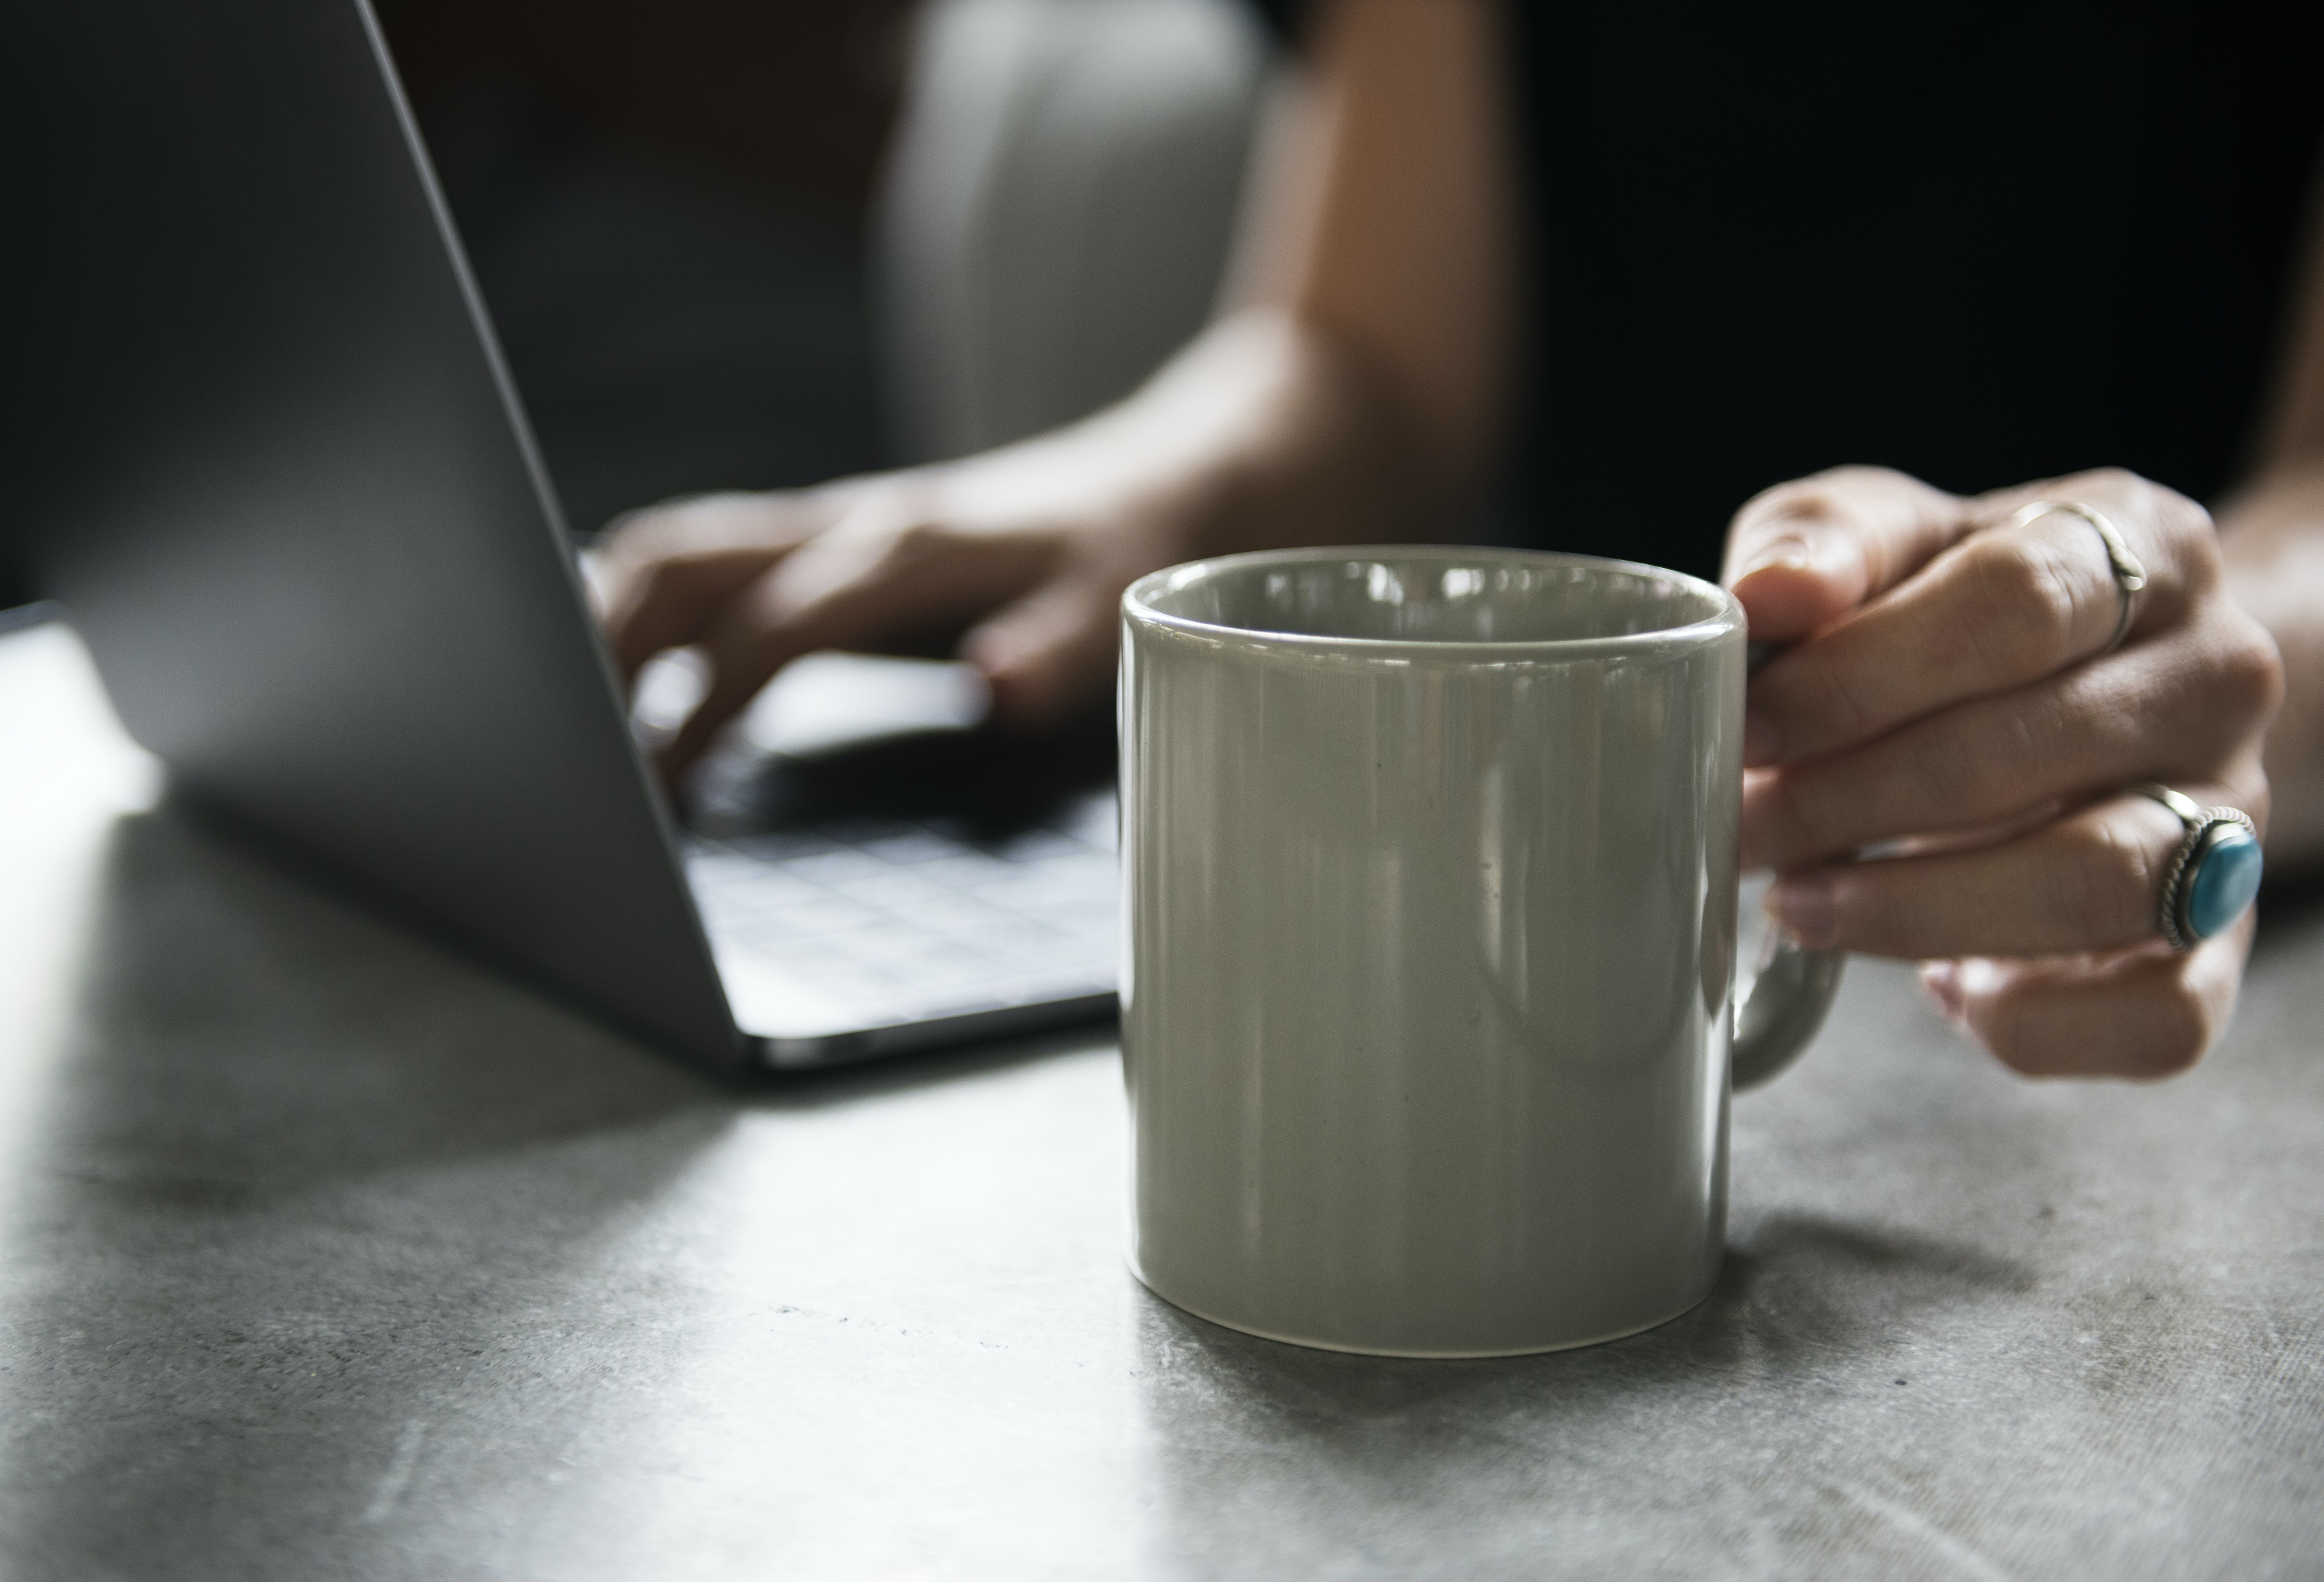 person holding gray ceramic mug while using laptop computer